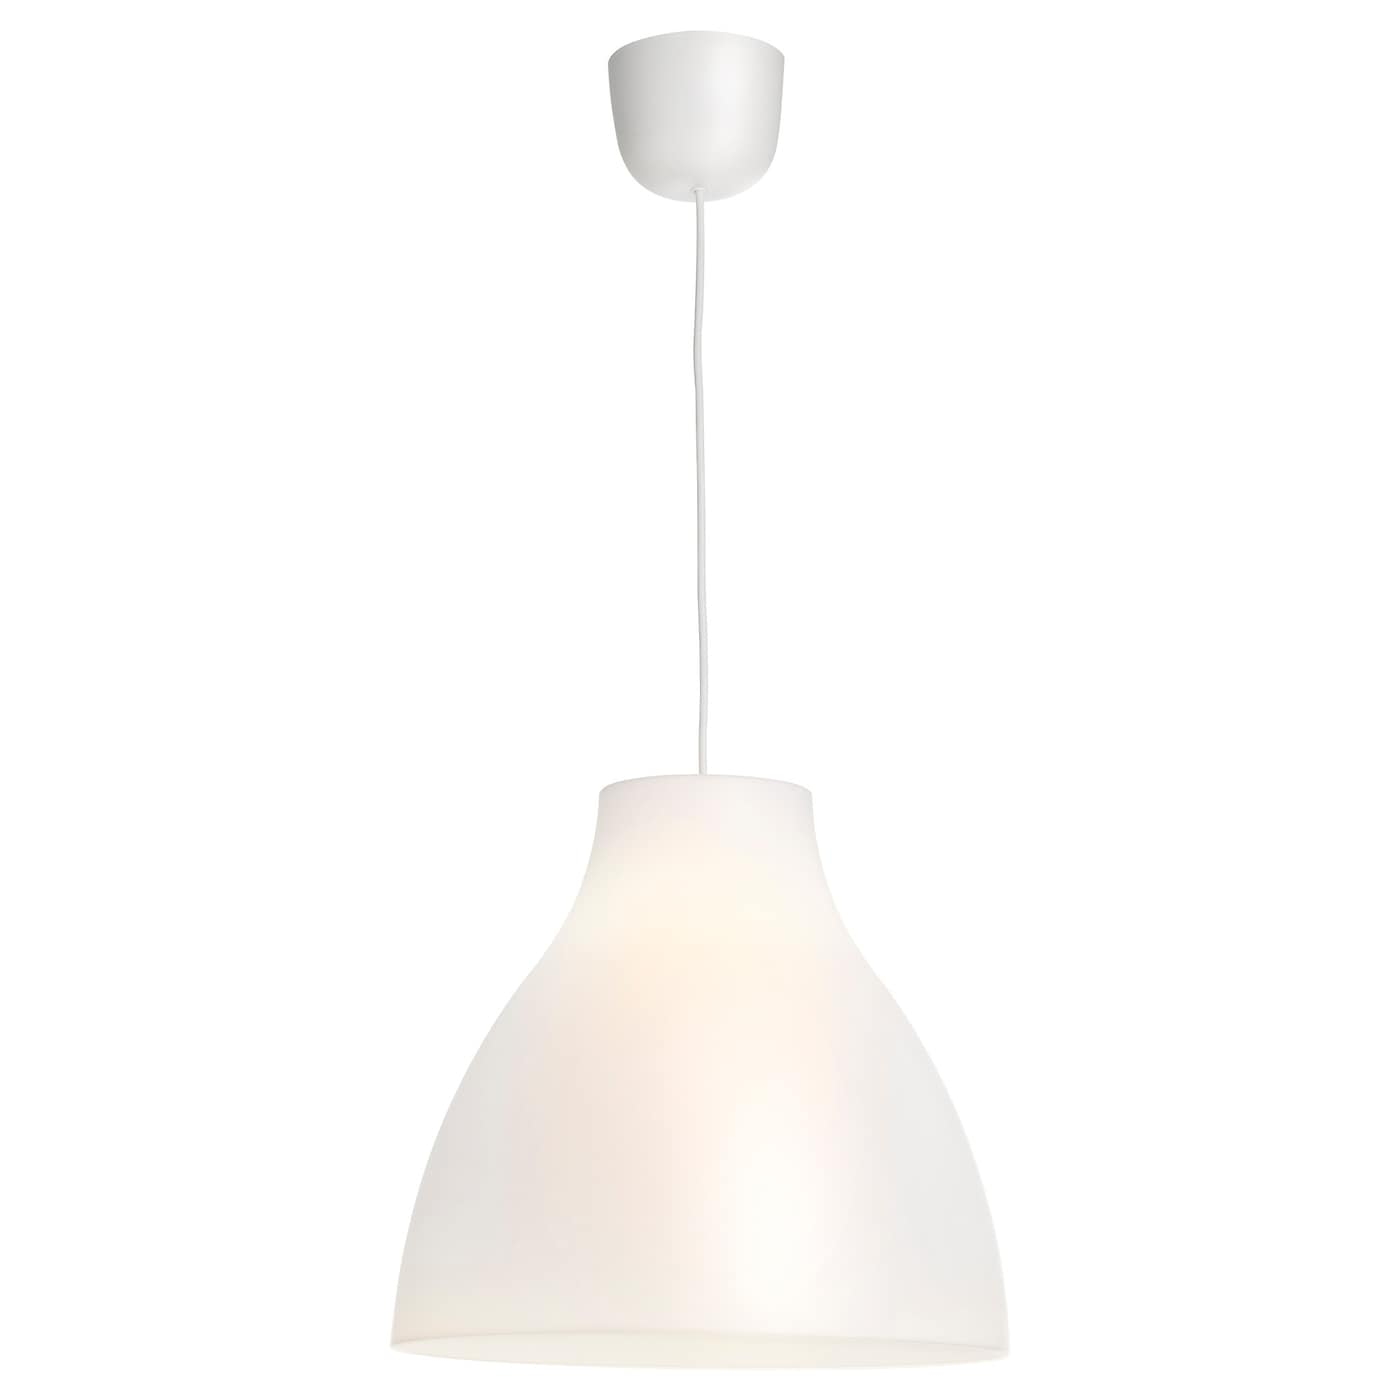 Ceiling lights led ceiling lights ikea - Suspension blanche ikea ...